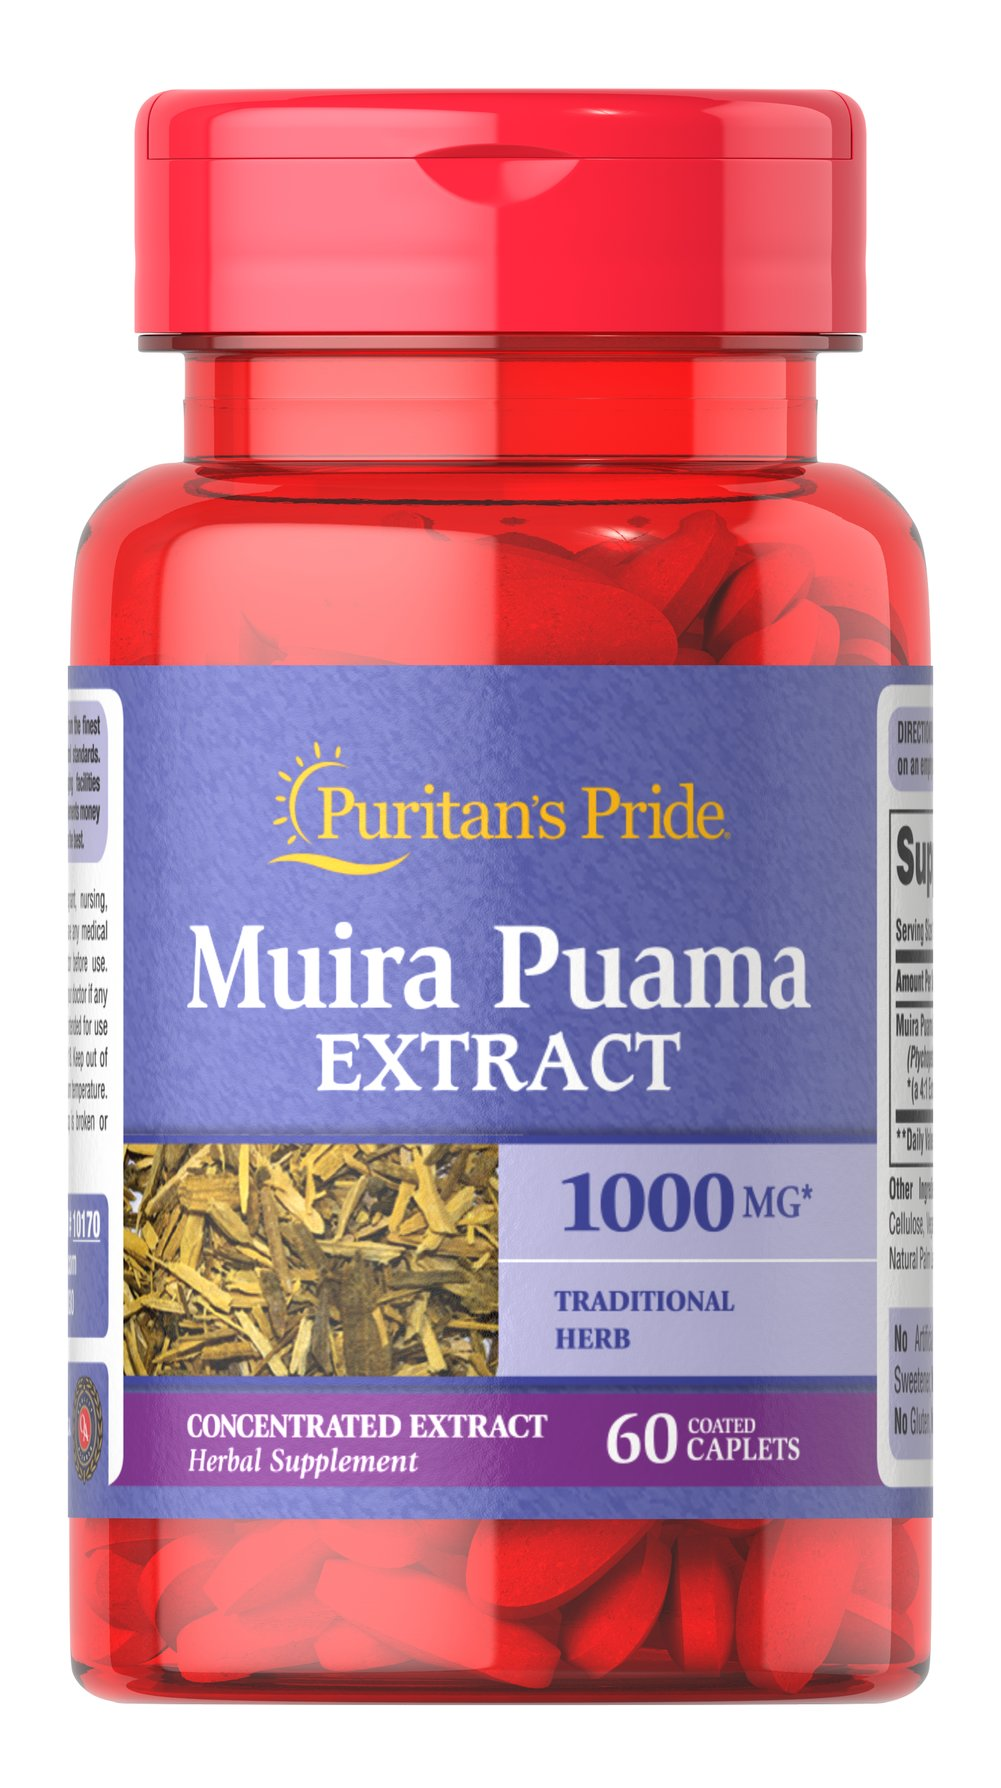 Muira Puama 1000 mg  60 Tablets 1000 mg $13.39